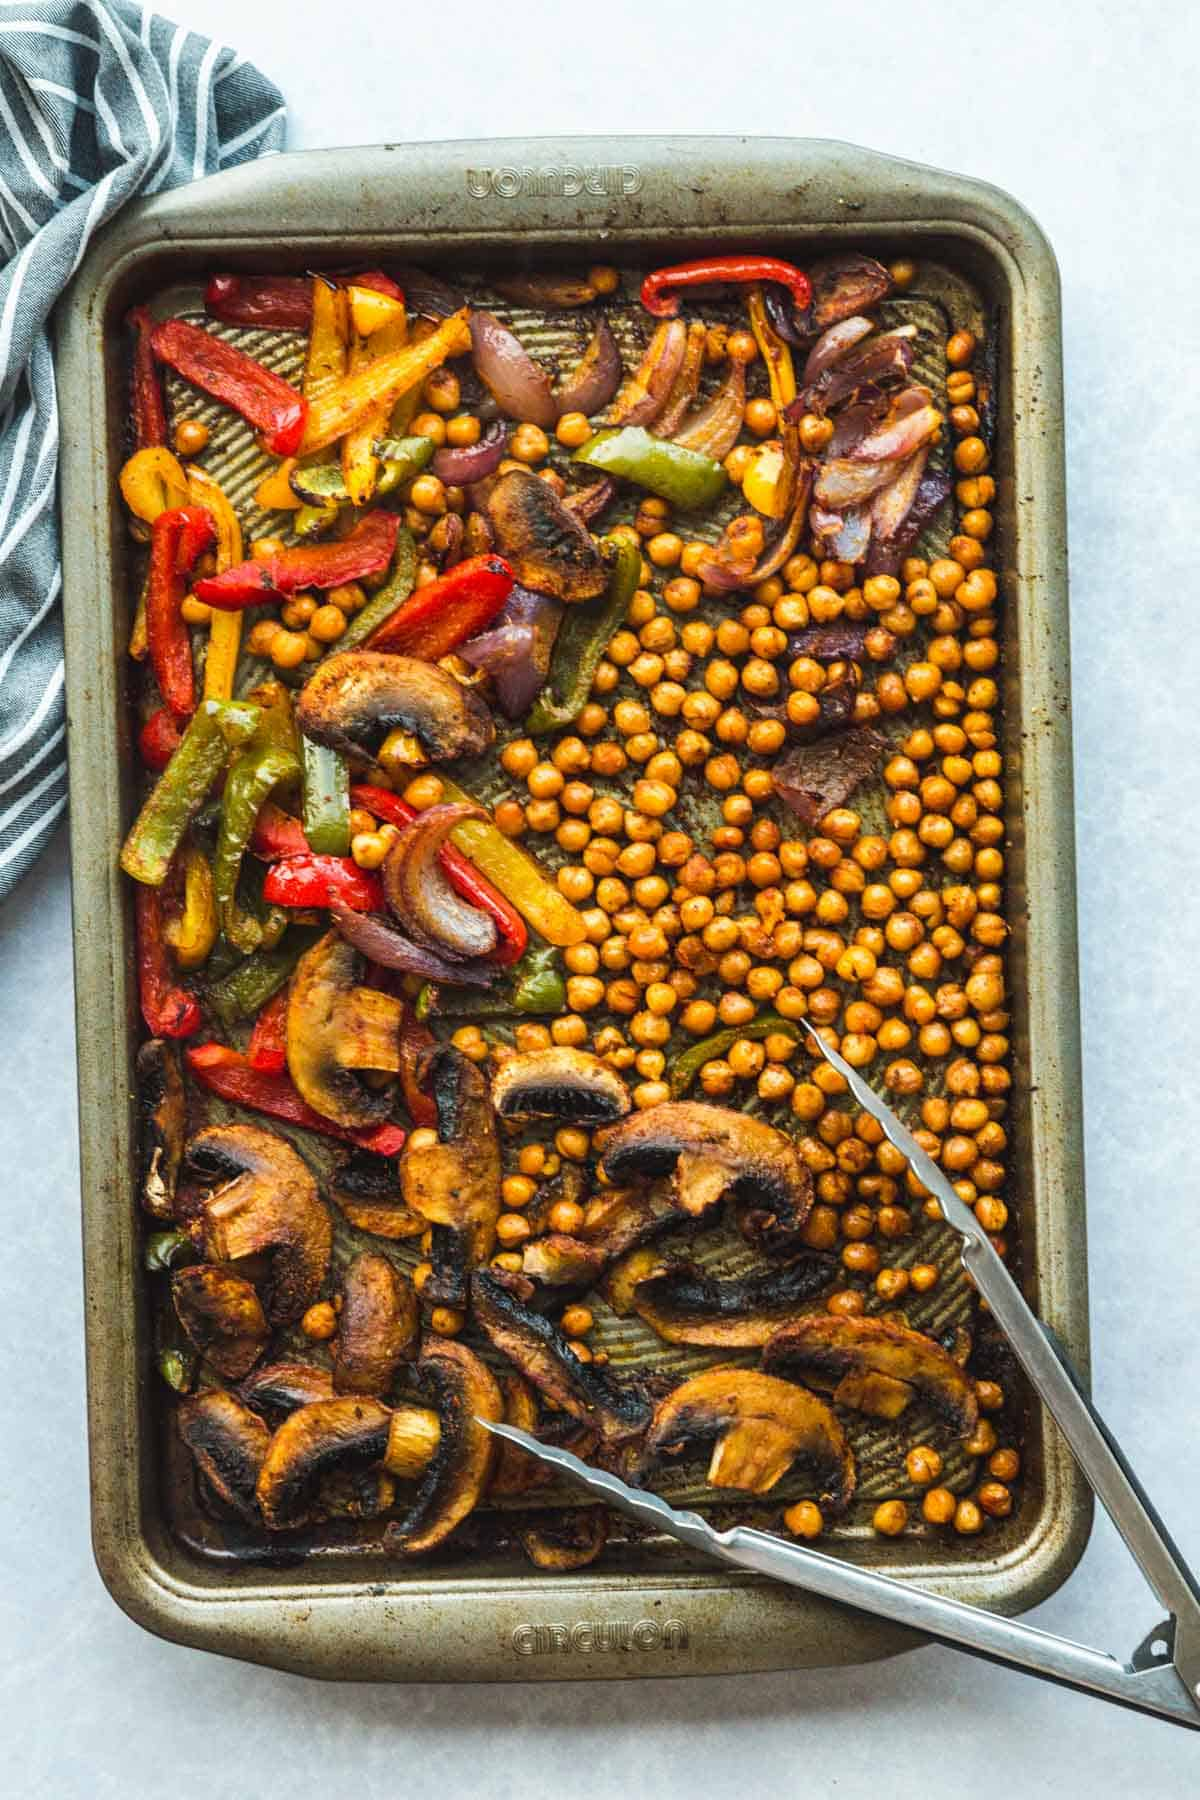 Cooked and ready sheet pan chickpea fajitas with kitchen tongs for serving